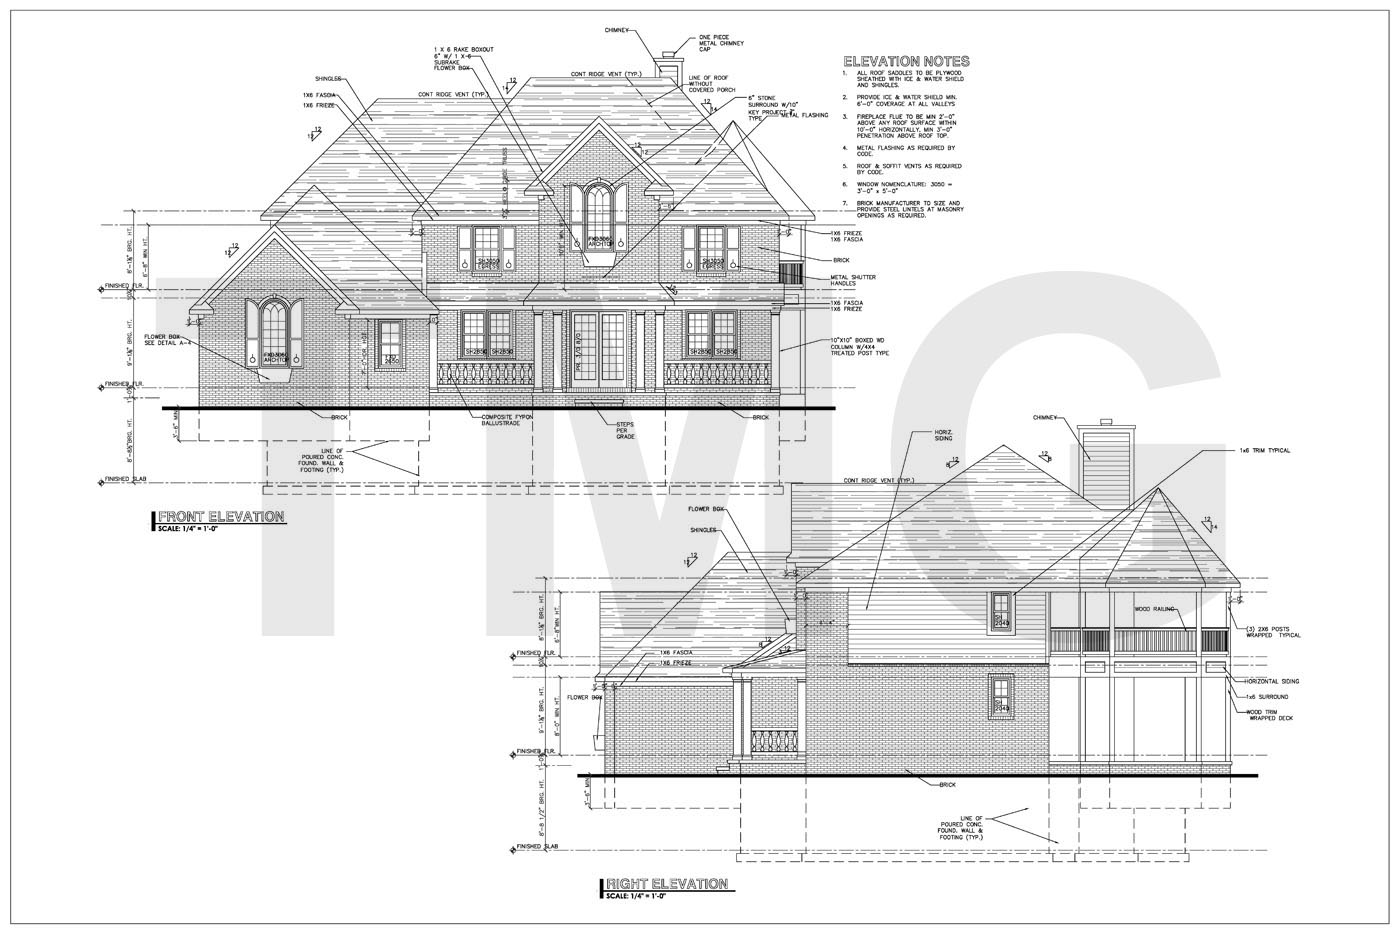 House plans drafting the magnum group tmg india House plan and elevation drawings